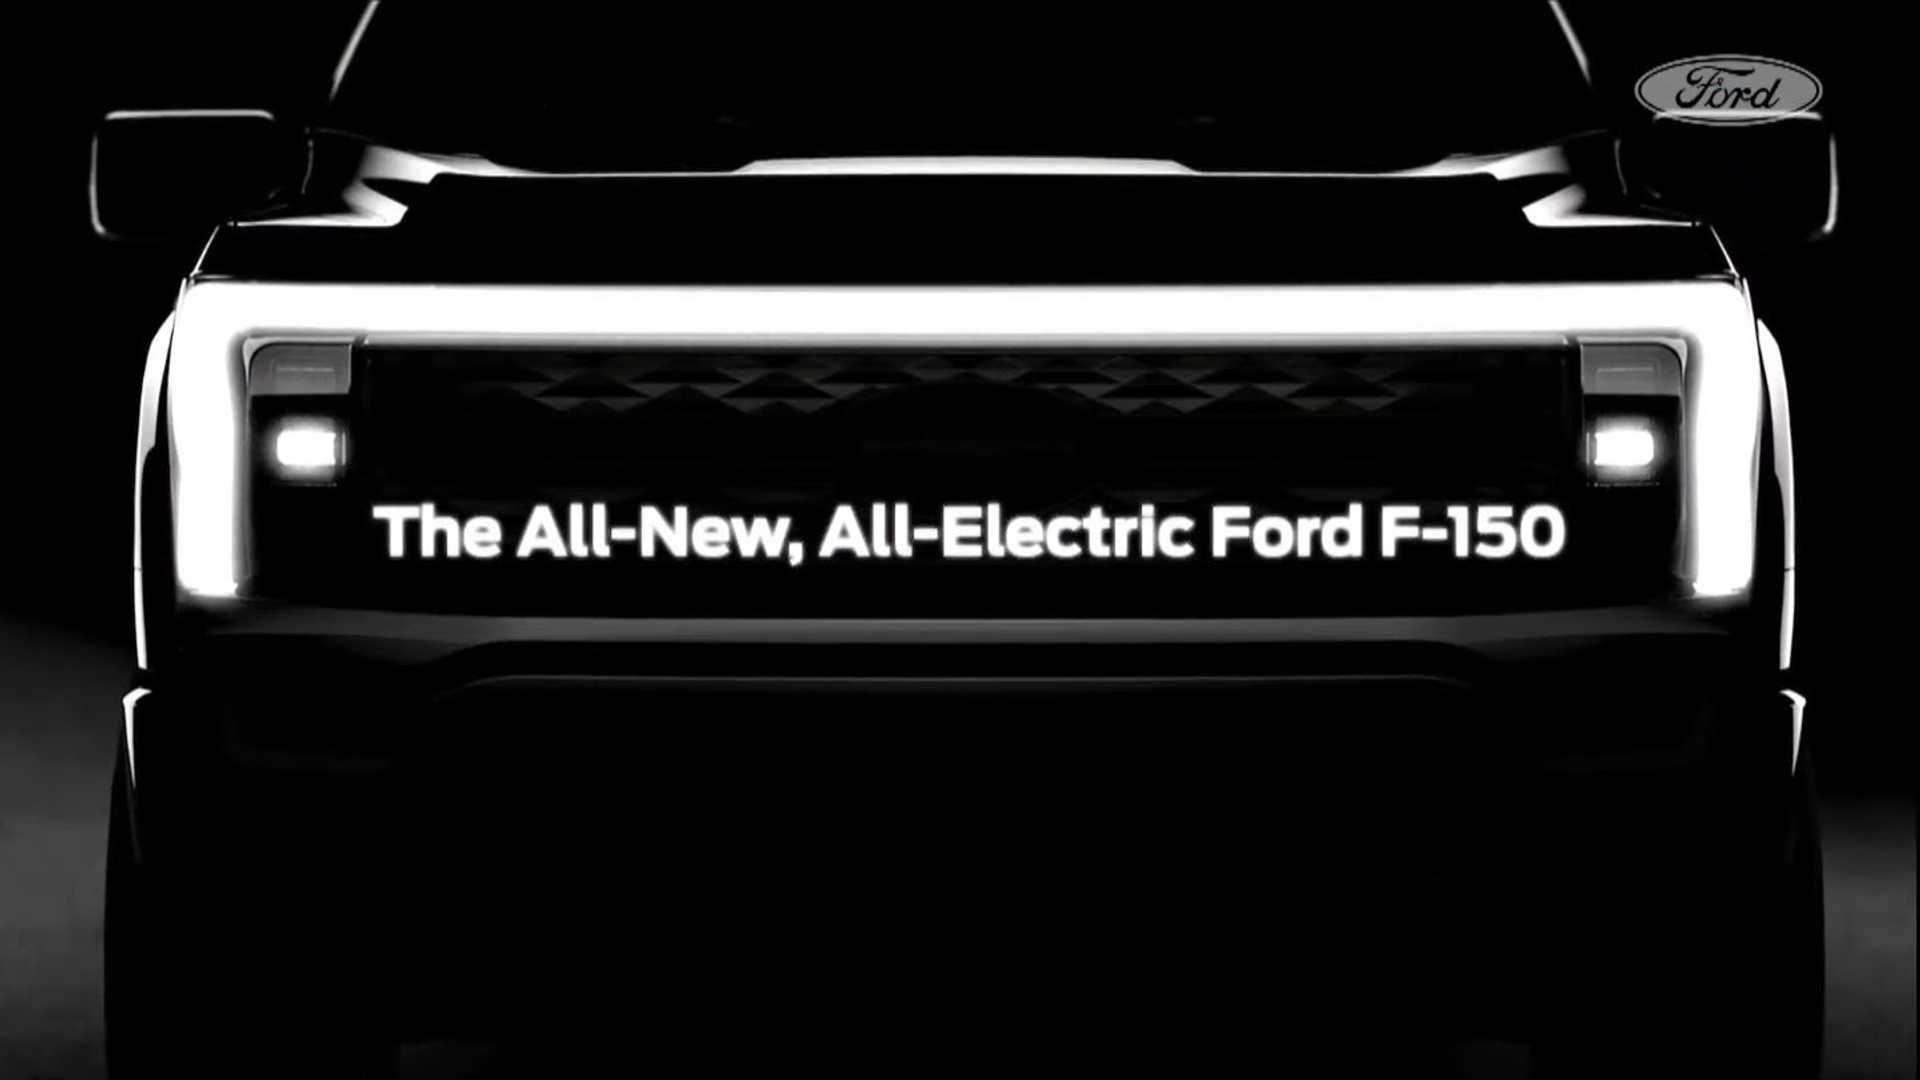 Ford's teaser of the upcoming pure EV F-150.